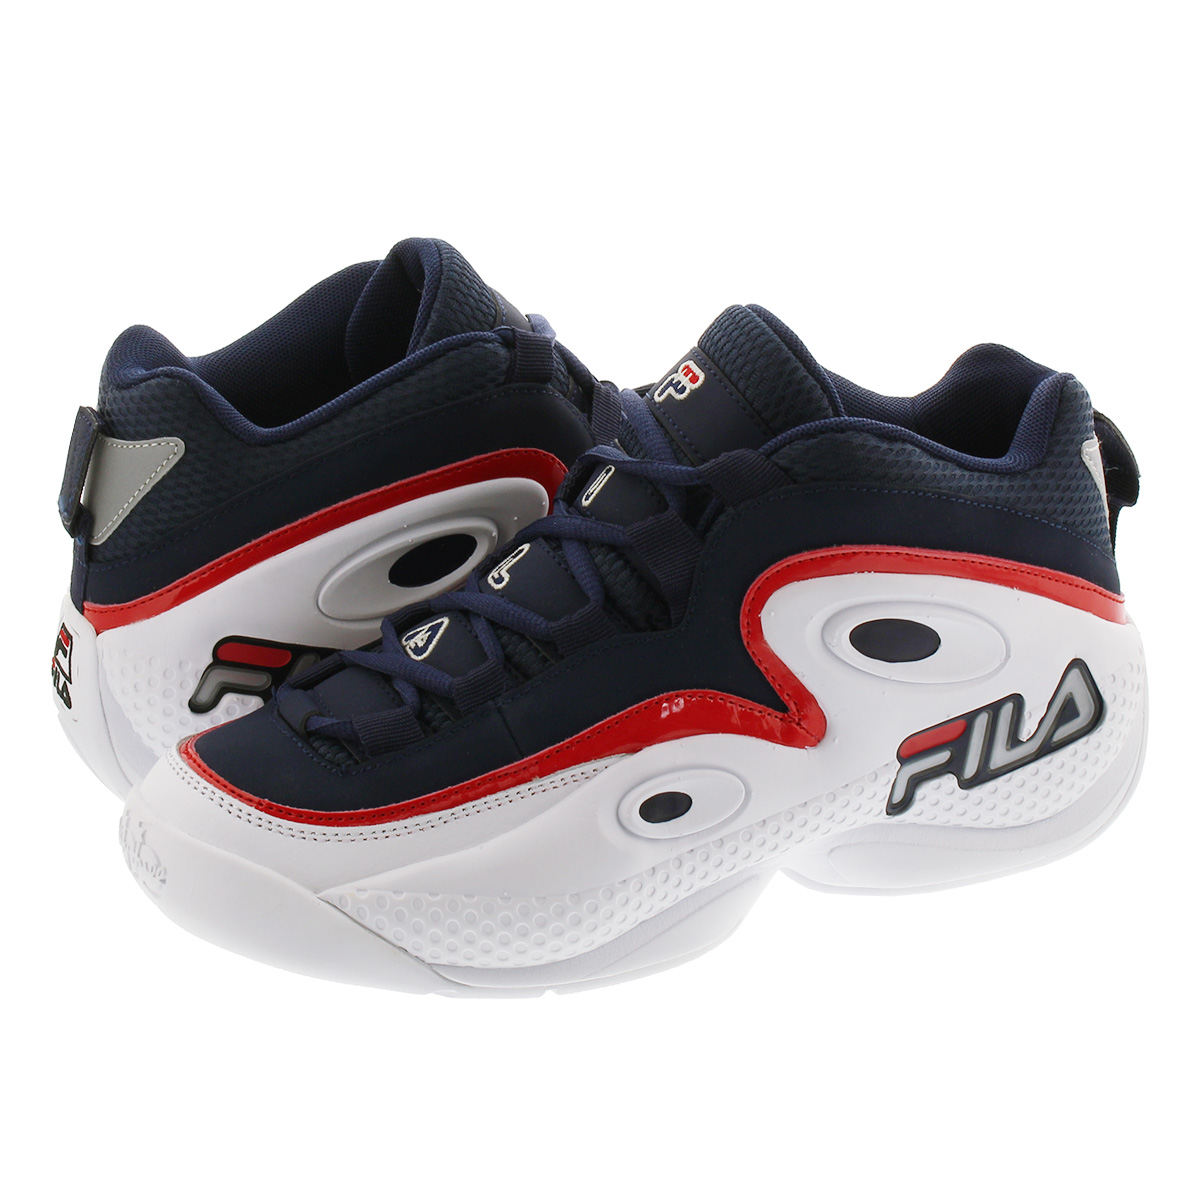 FILA GRANT HILL 3 フィラ グラント ヒル 3 NAVY/WHITE/RED f0478-0422